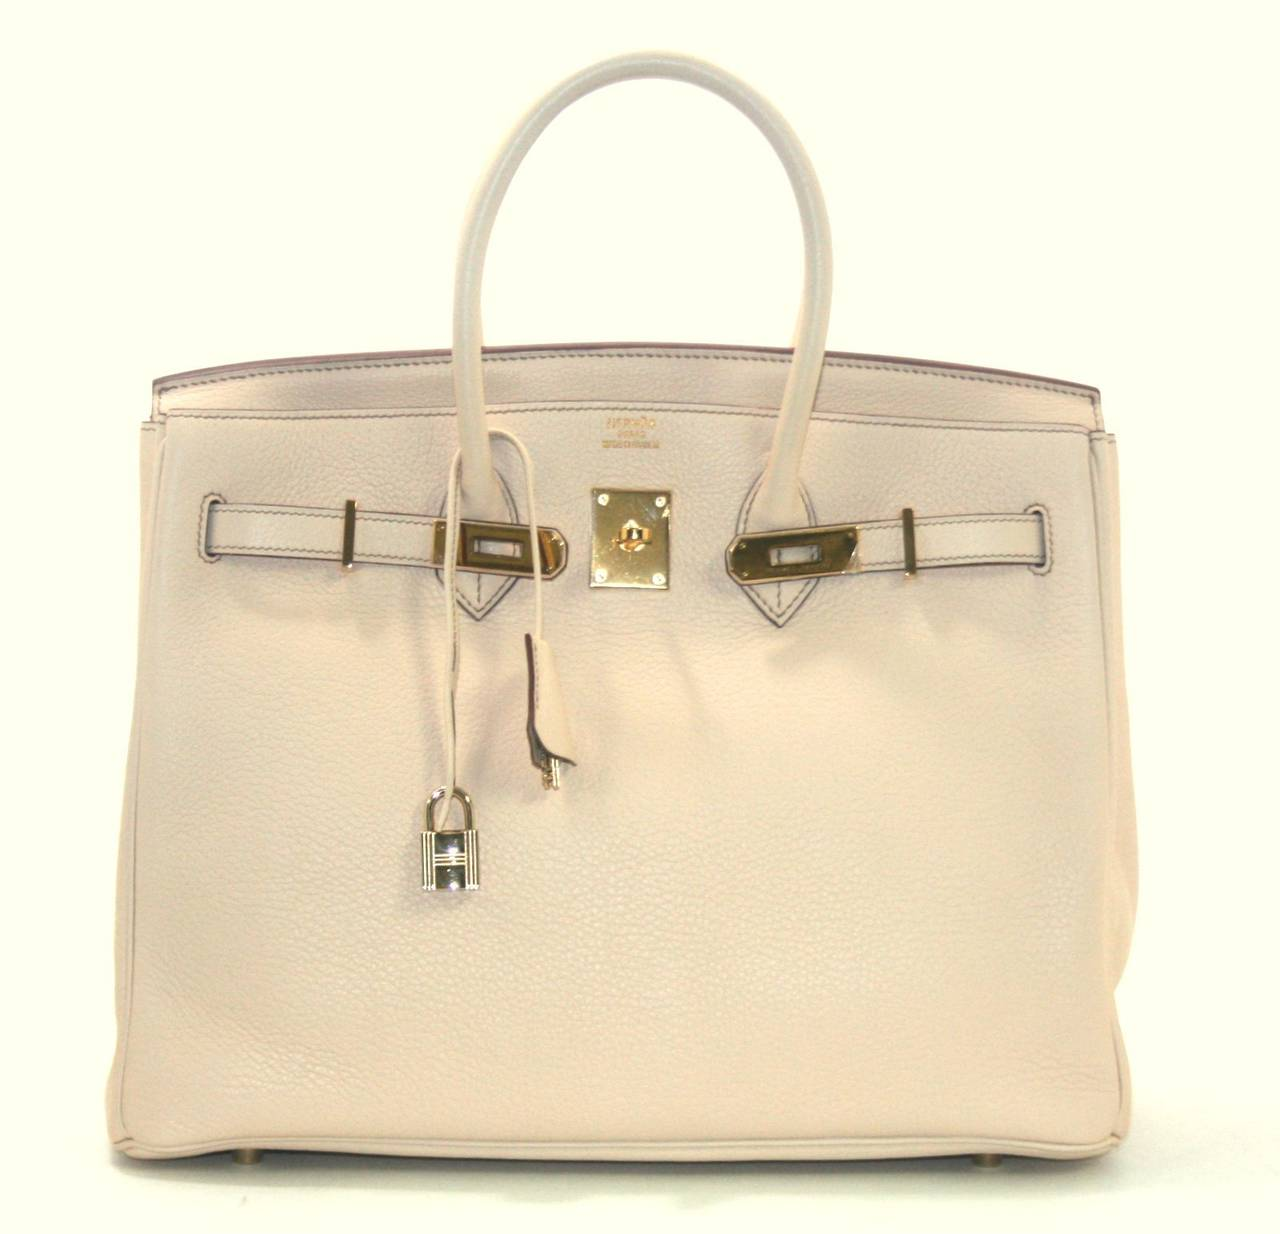 hermes bag kelly - Herm��s Birkin Bag in Beige Clemence with Gold, 35 cm size at 1stdibs